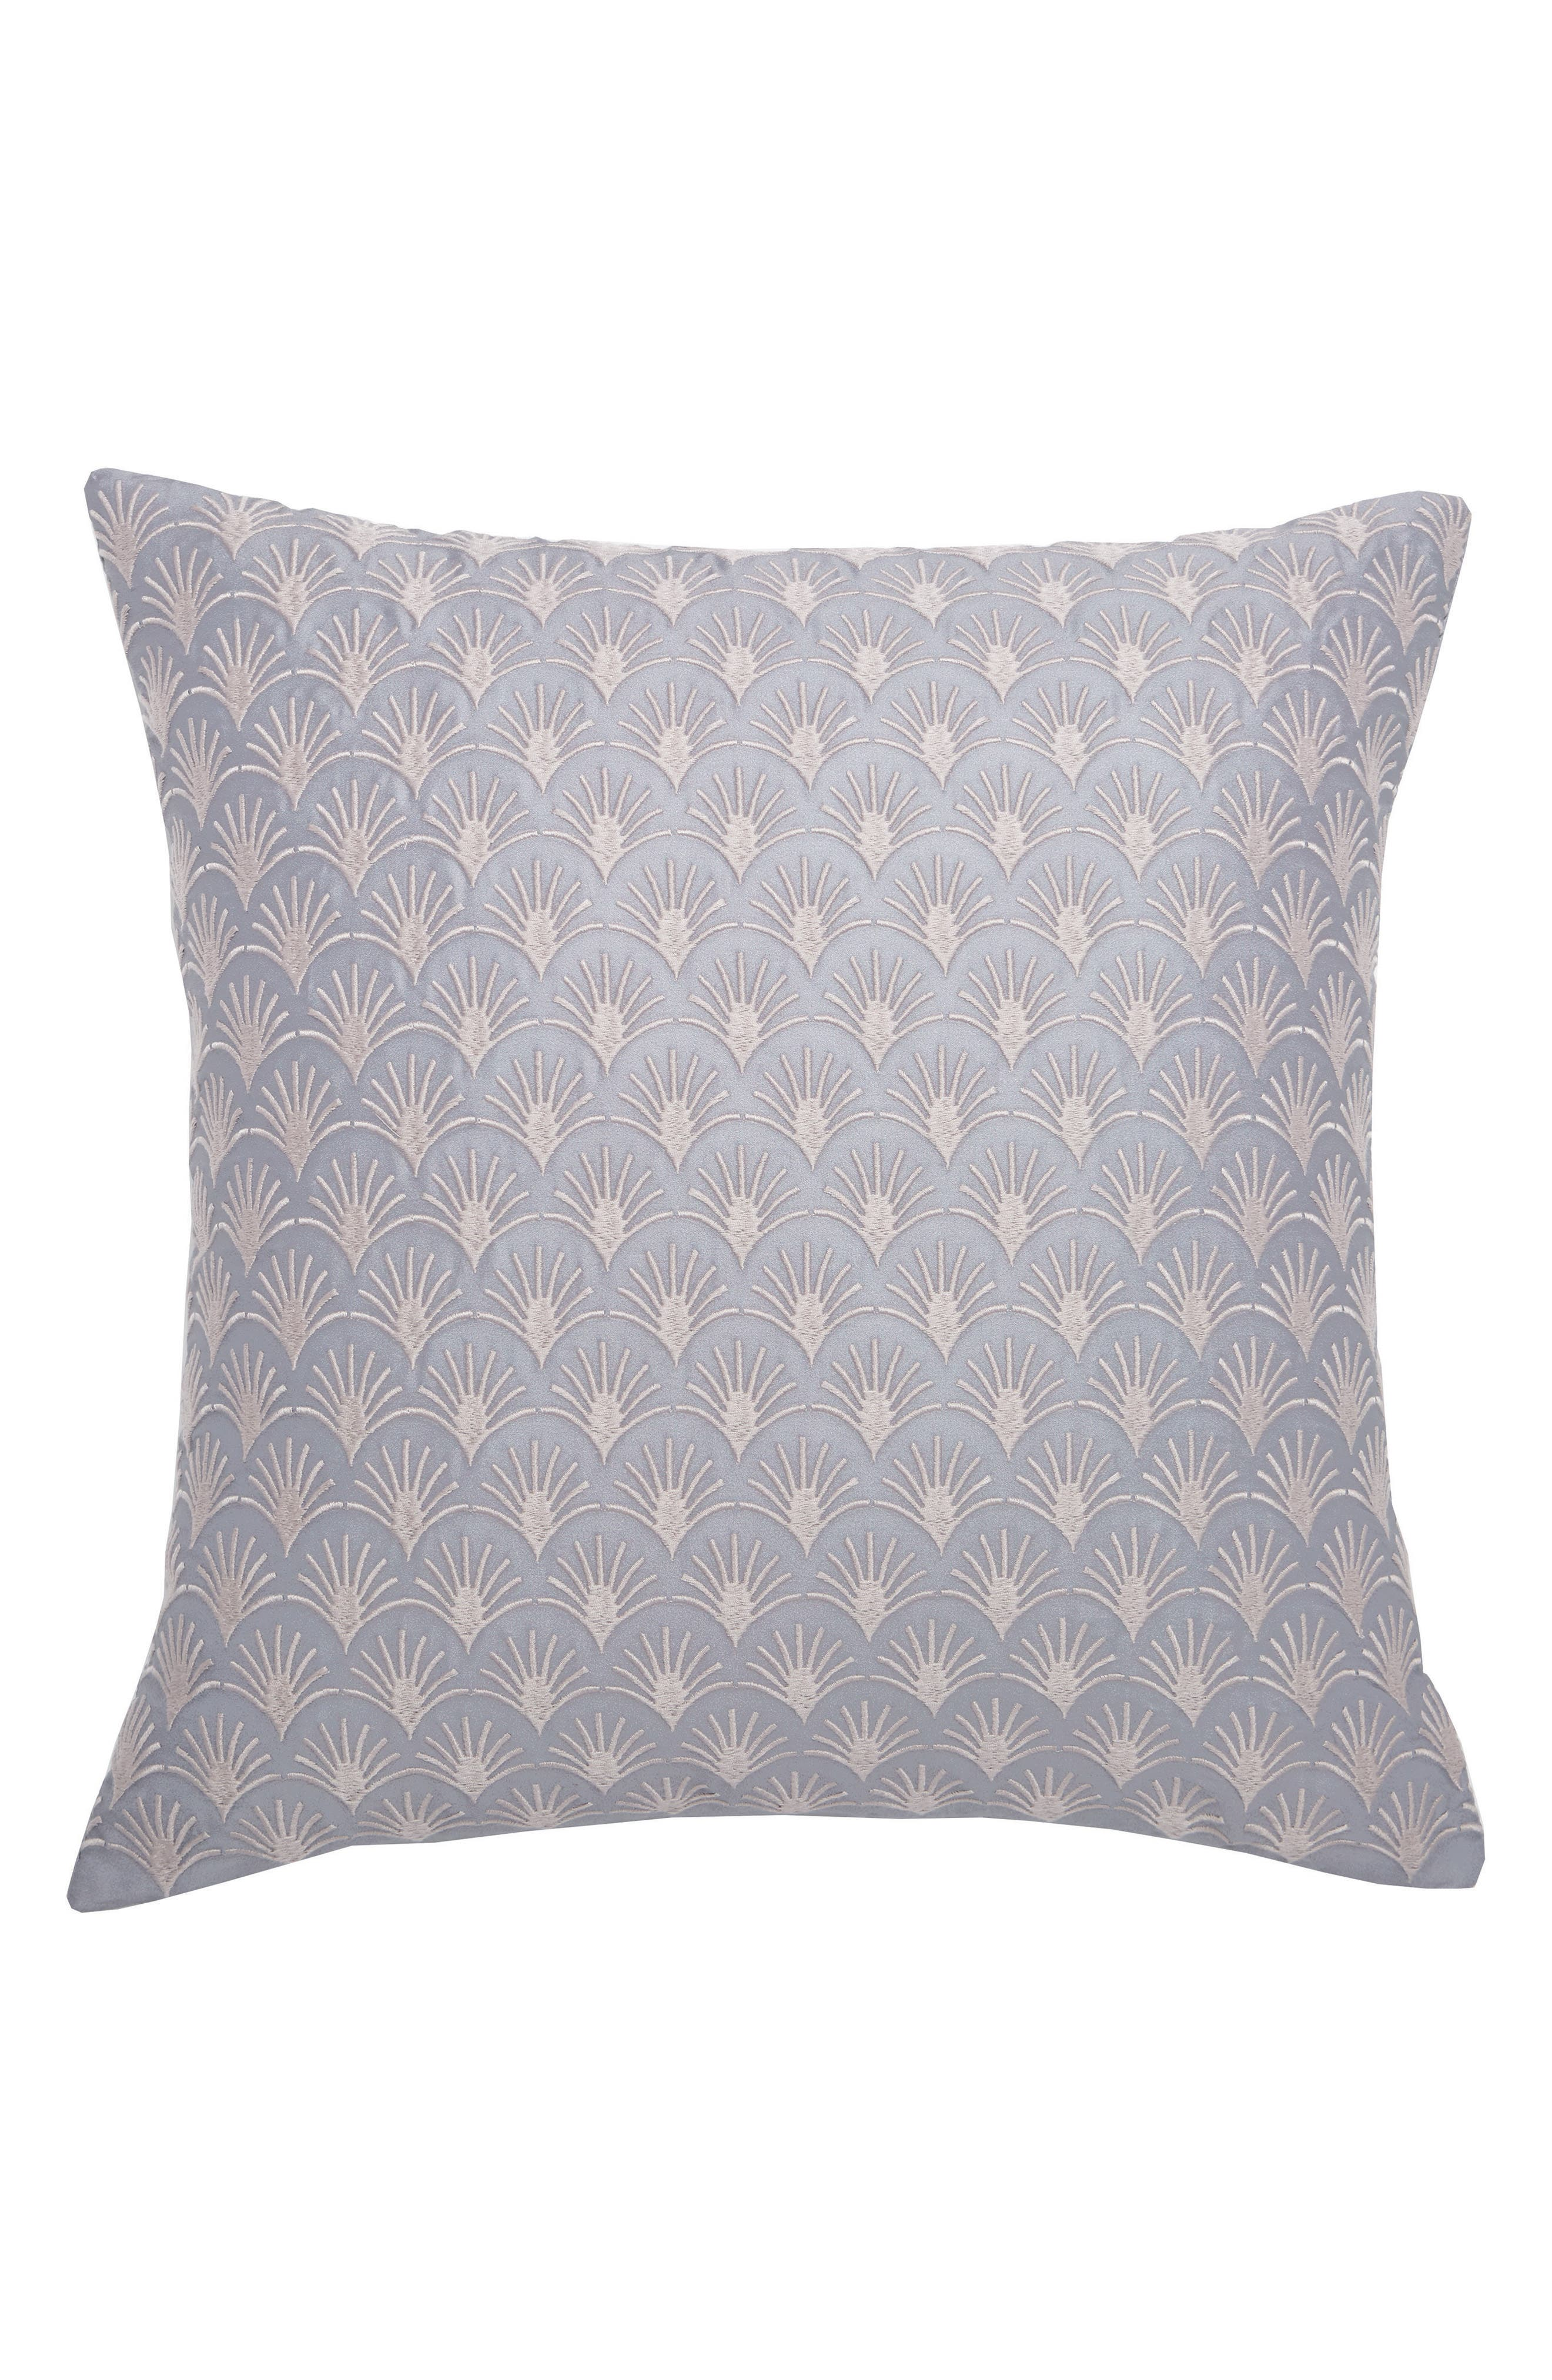 Fan Embroidered Pillow,                         Main,                         color, Grey/ Pink